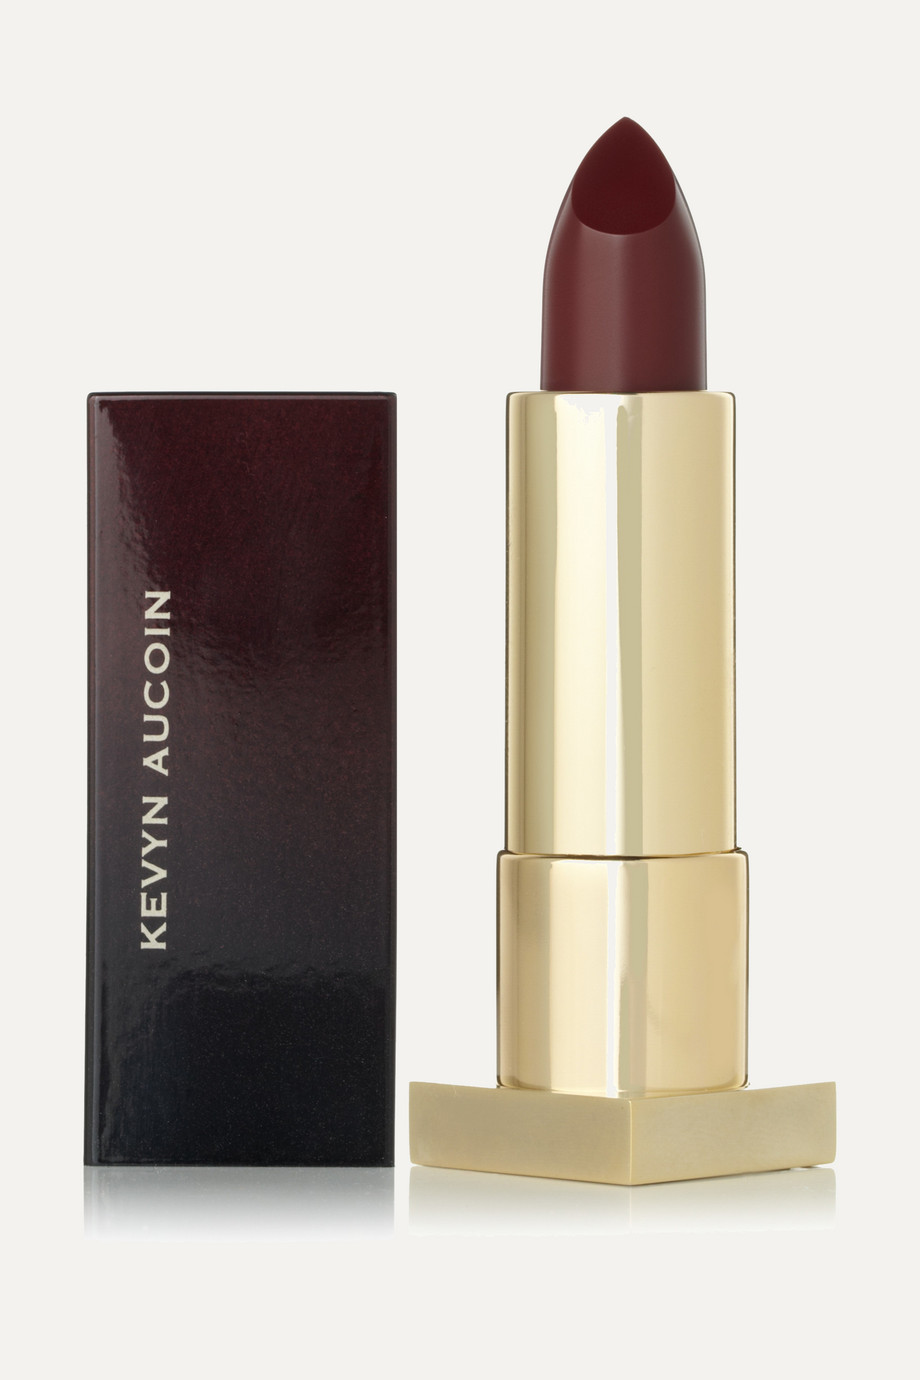 The Expert Lip Color - Bloodroses, by Kevyn Aucoin